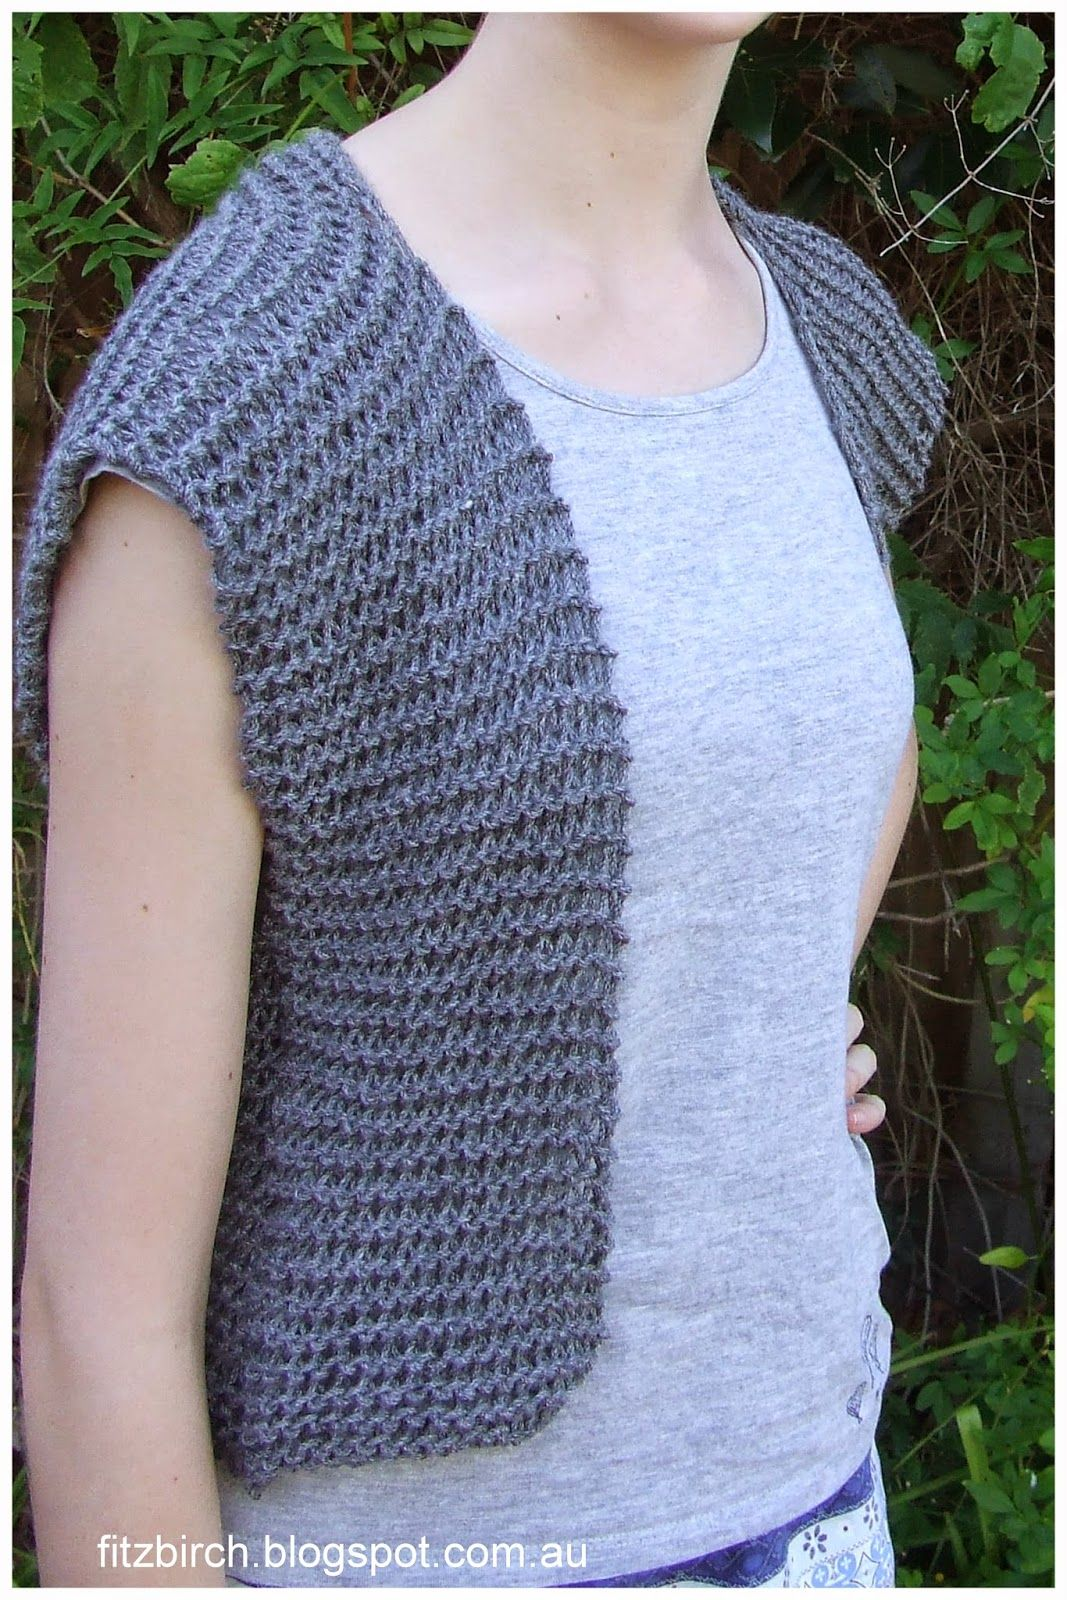 FitzBirch Crafts: Garter Stitch Beginner Vest | Crafts & such ...